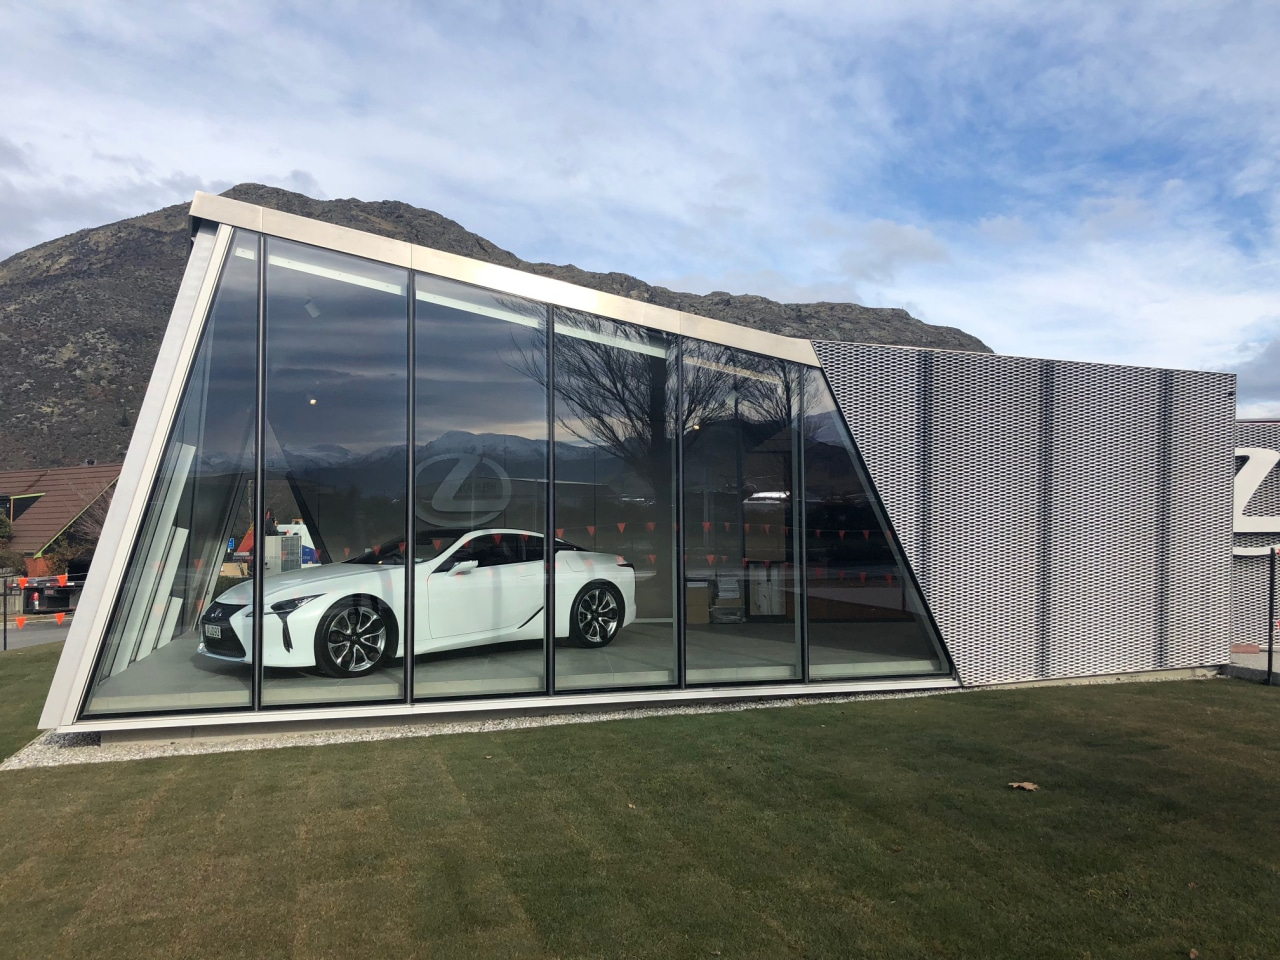 Do you have any preferences sir? - Car architecture, building, car, facade, house, metal, property, roof, shade, vehicle, vehicle door, teal